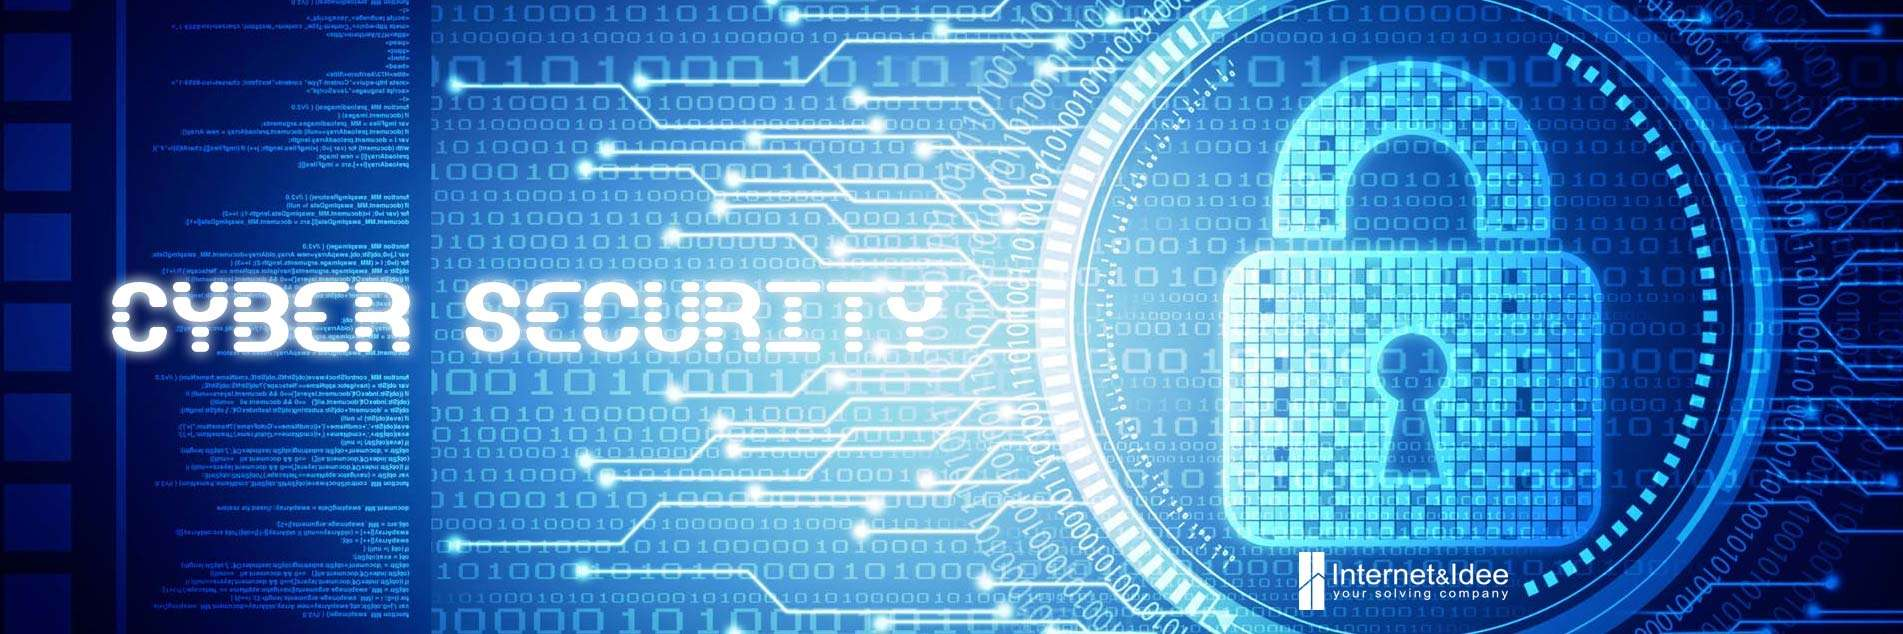 Cyber security: what are the most common cyber threats?